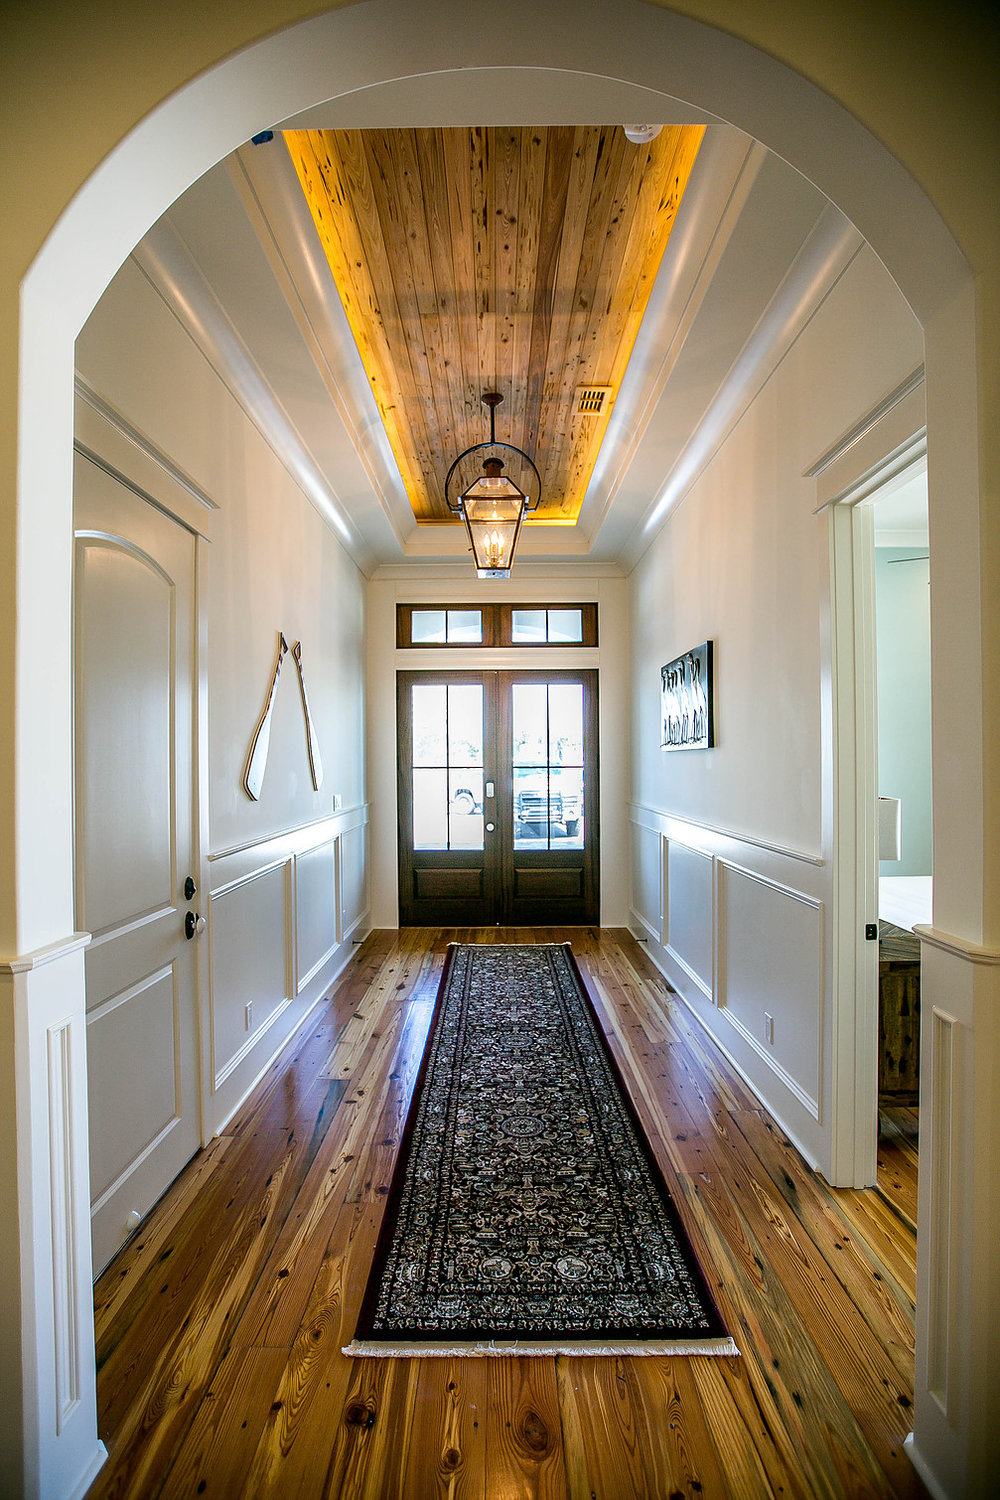 Custom Home with Wood Floors and Wood planked ceiling inset